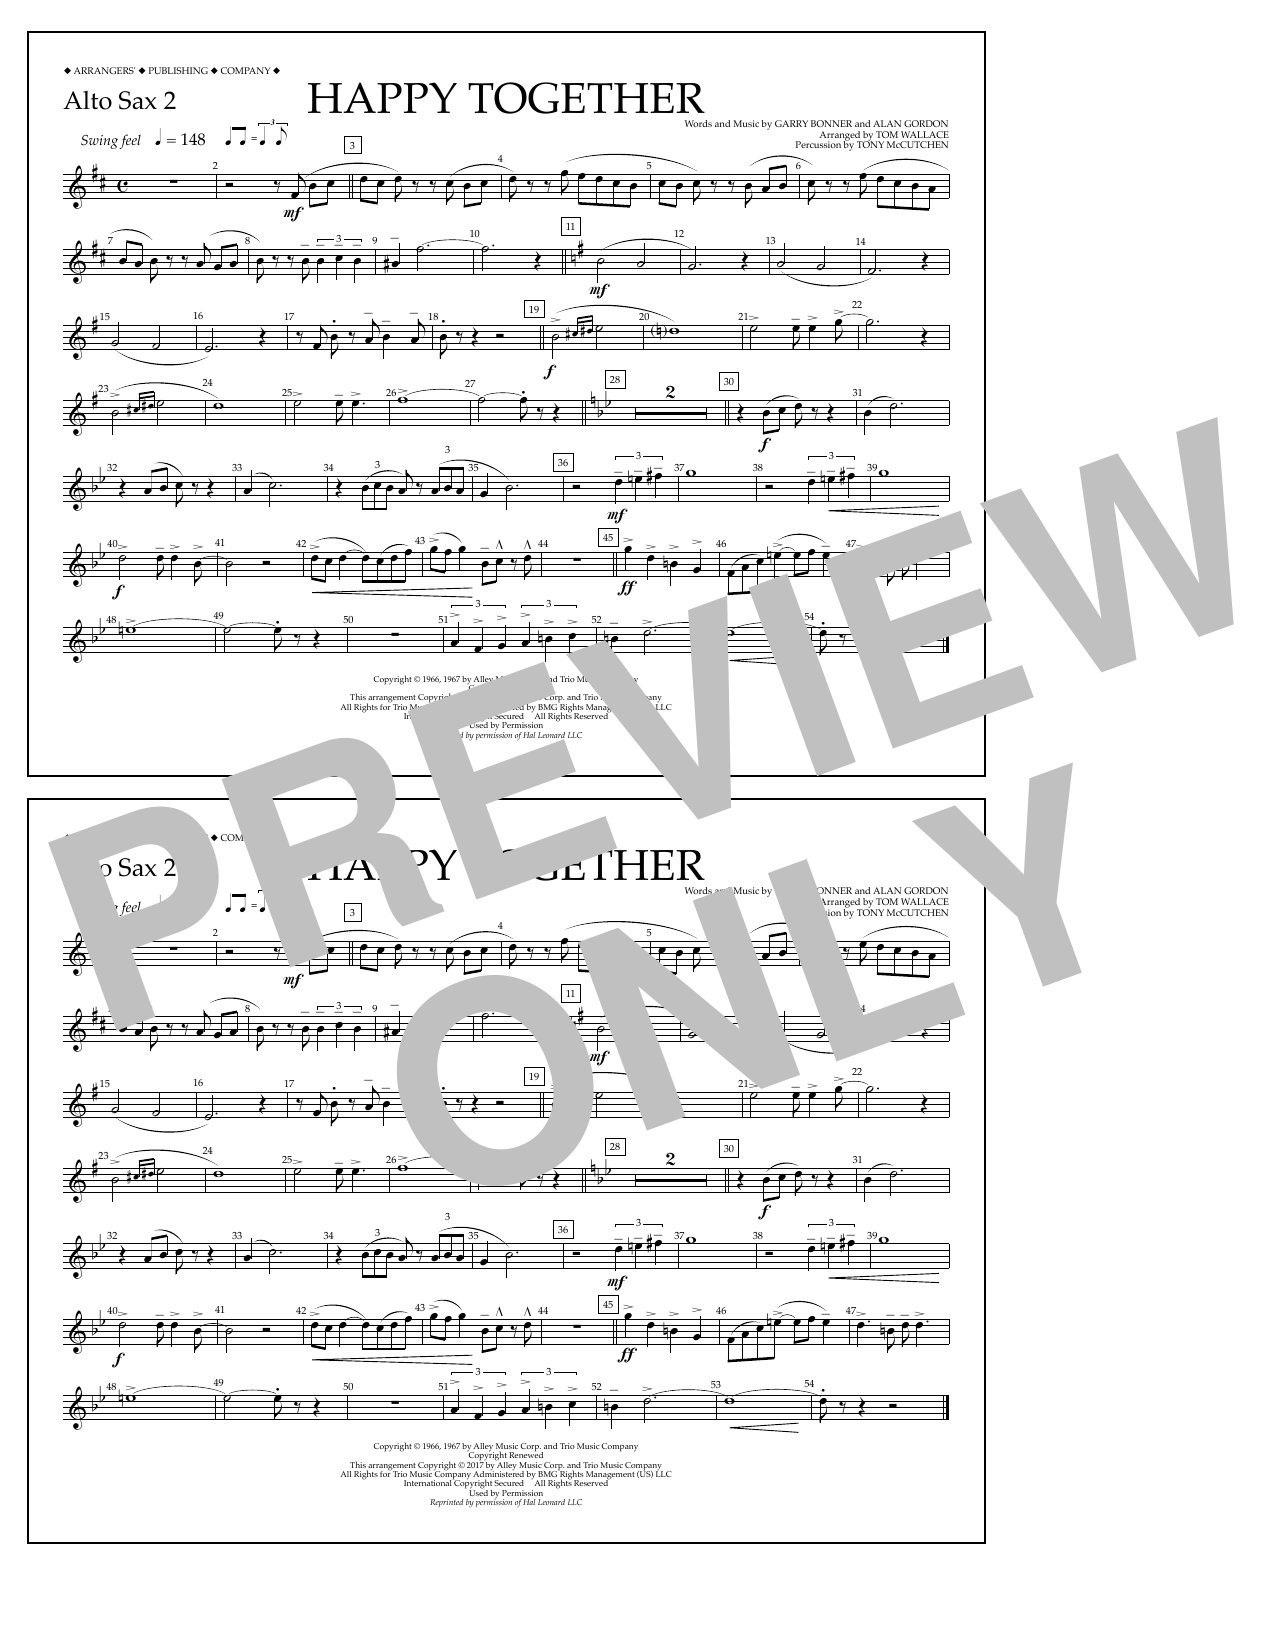 Happy Together - Alto Sax 2 Sheet Music